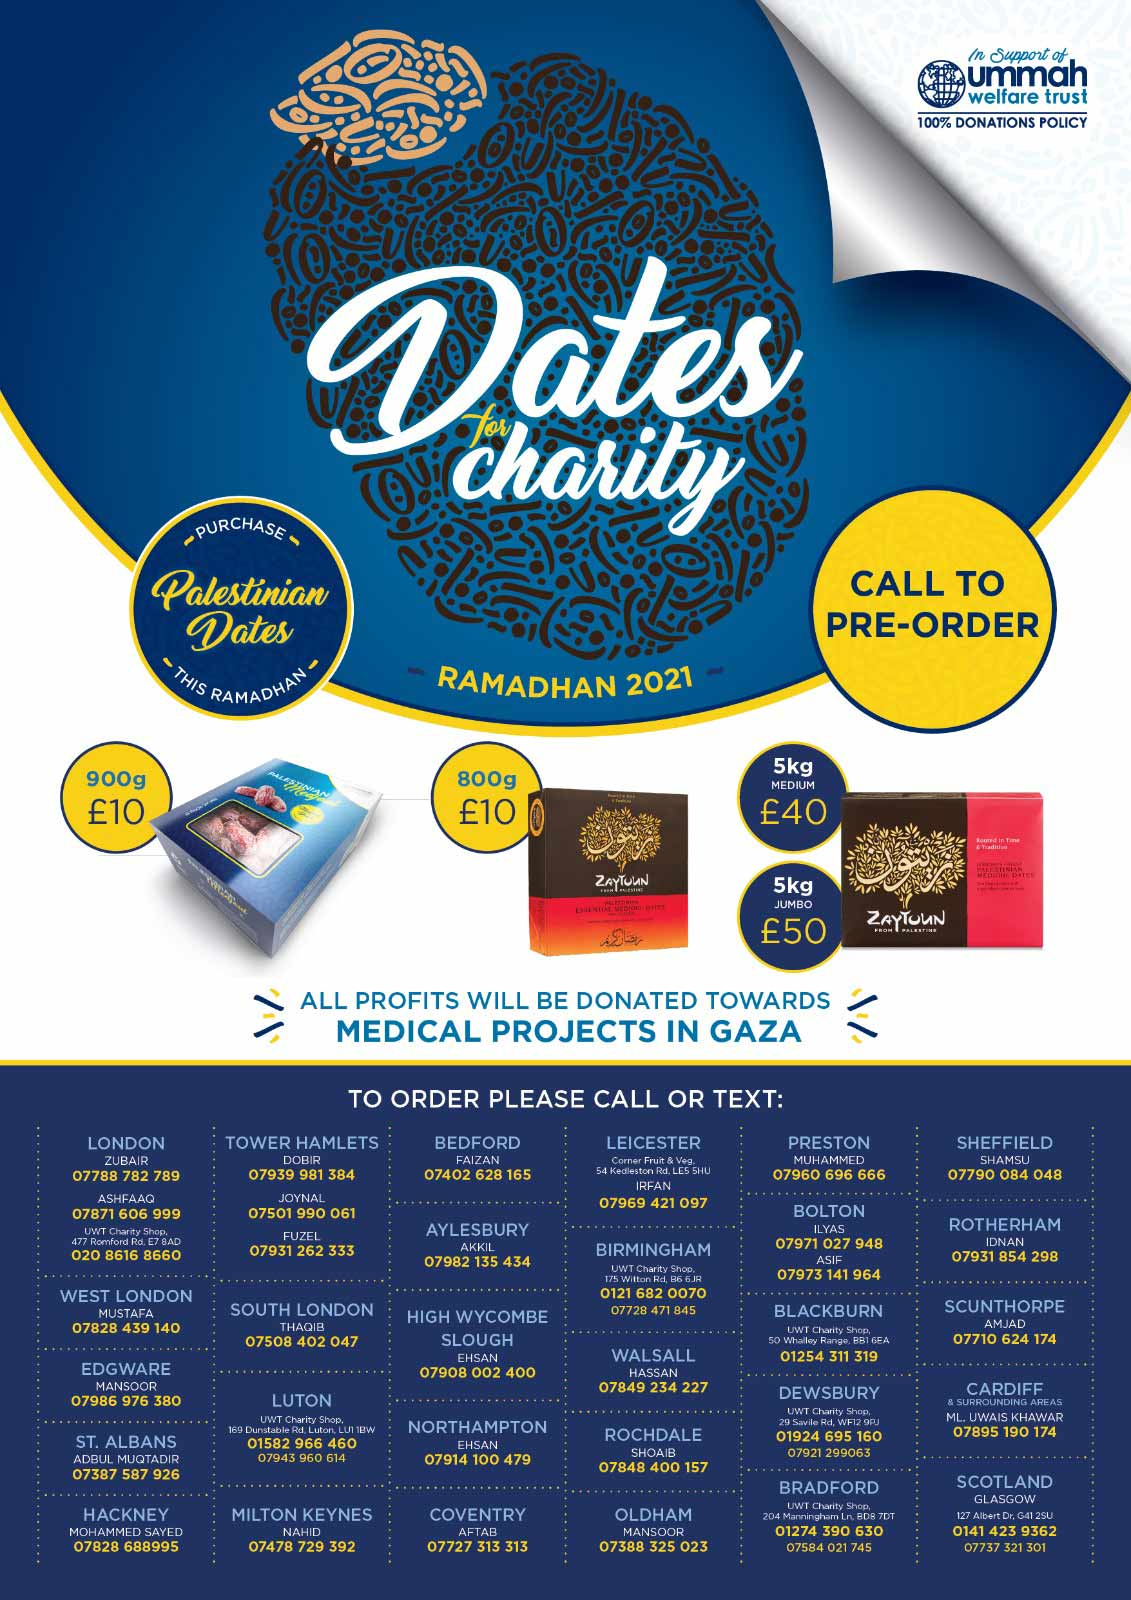 Charity Date Sale for Ramadhan across UK